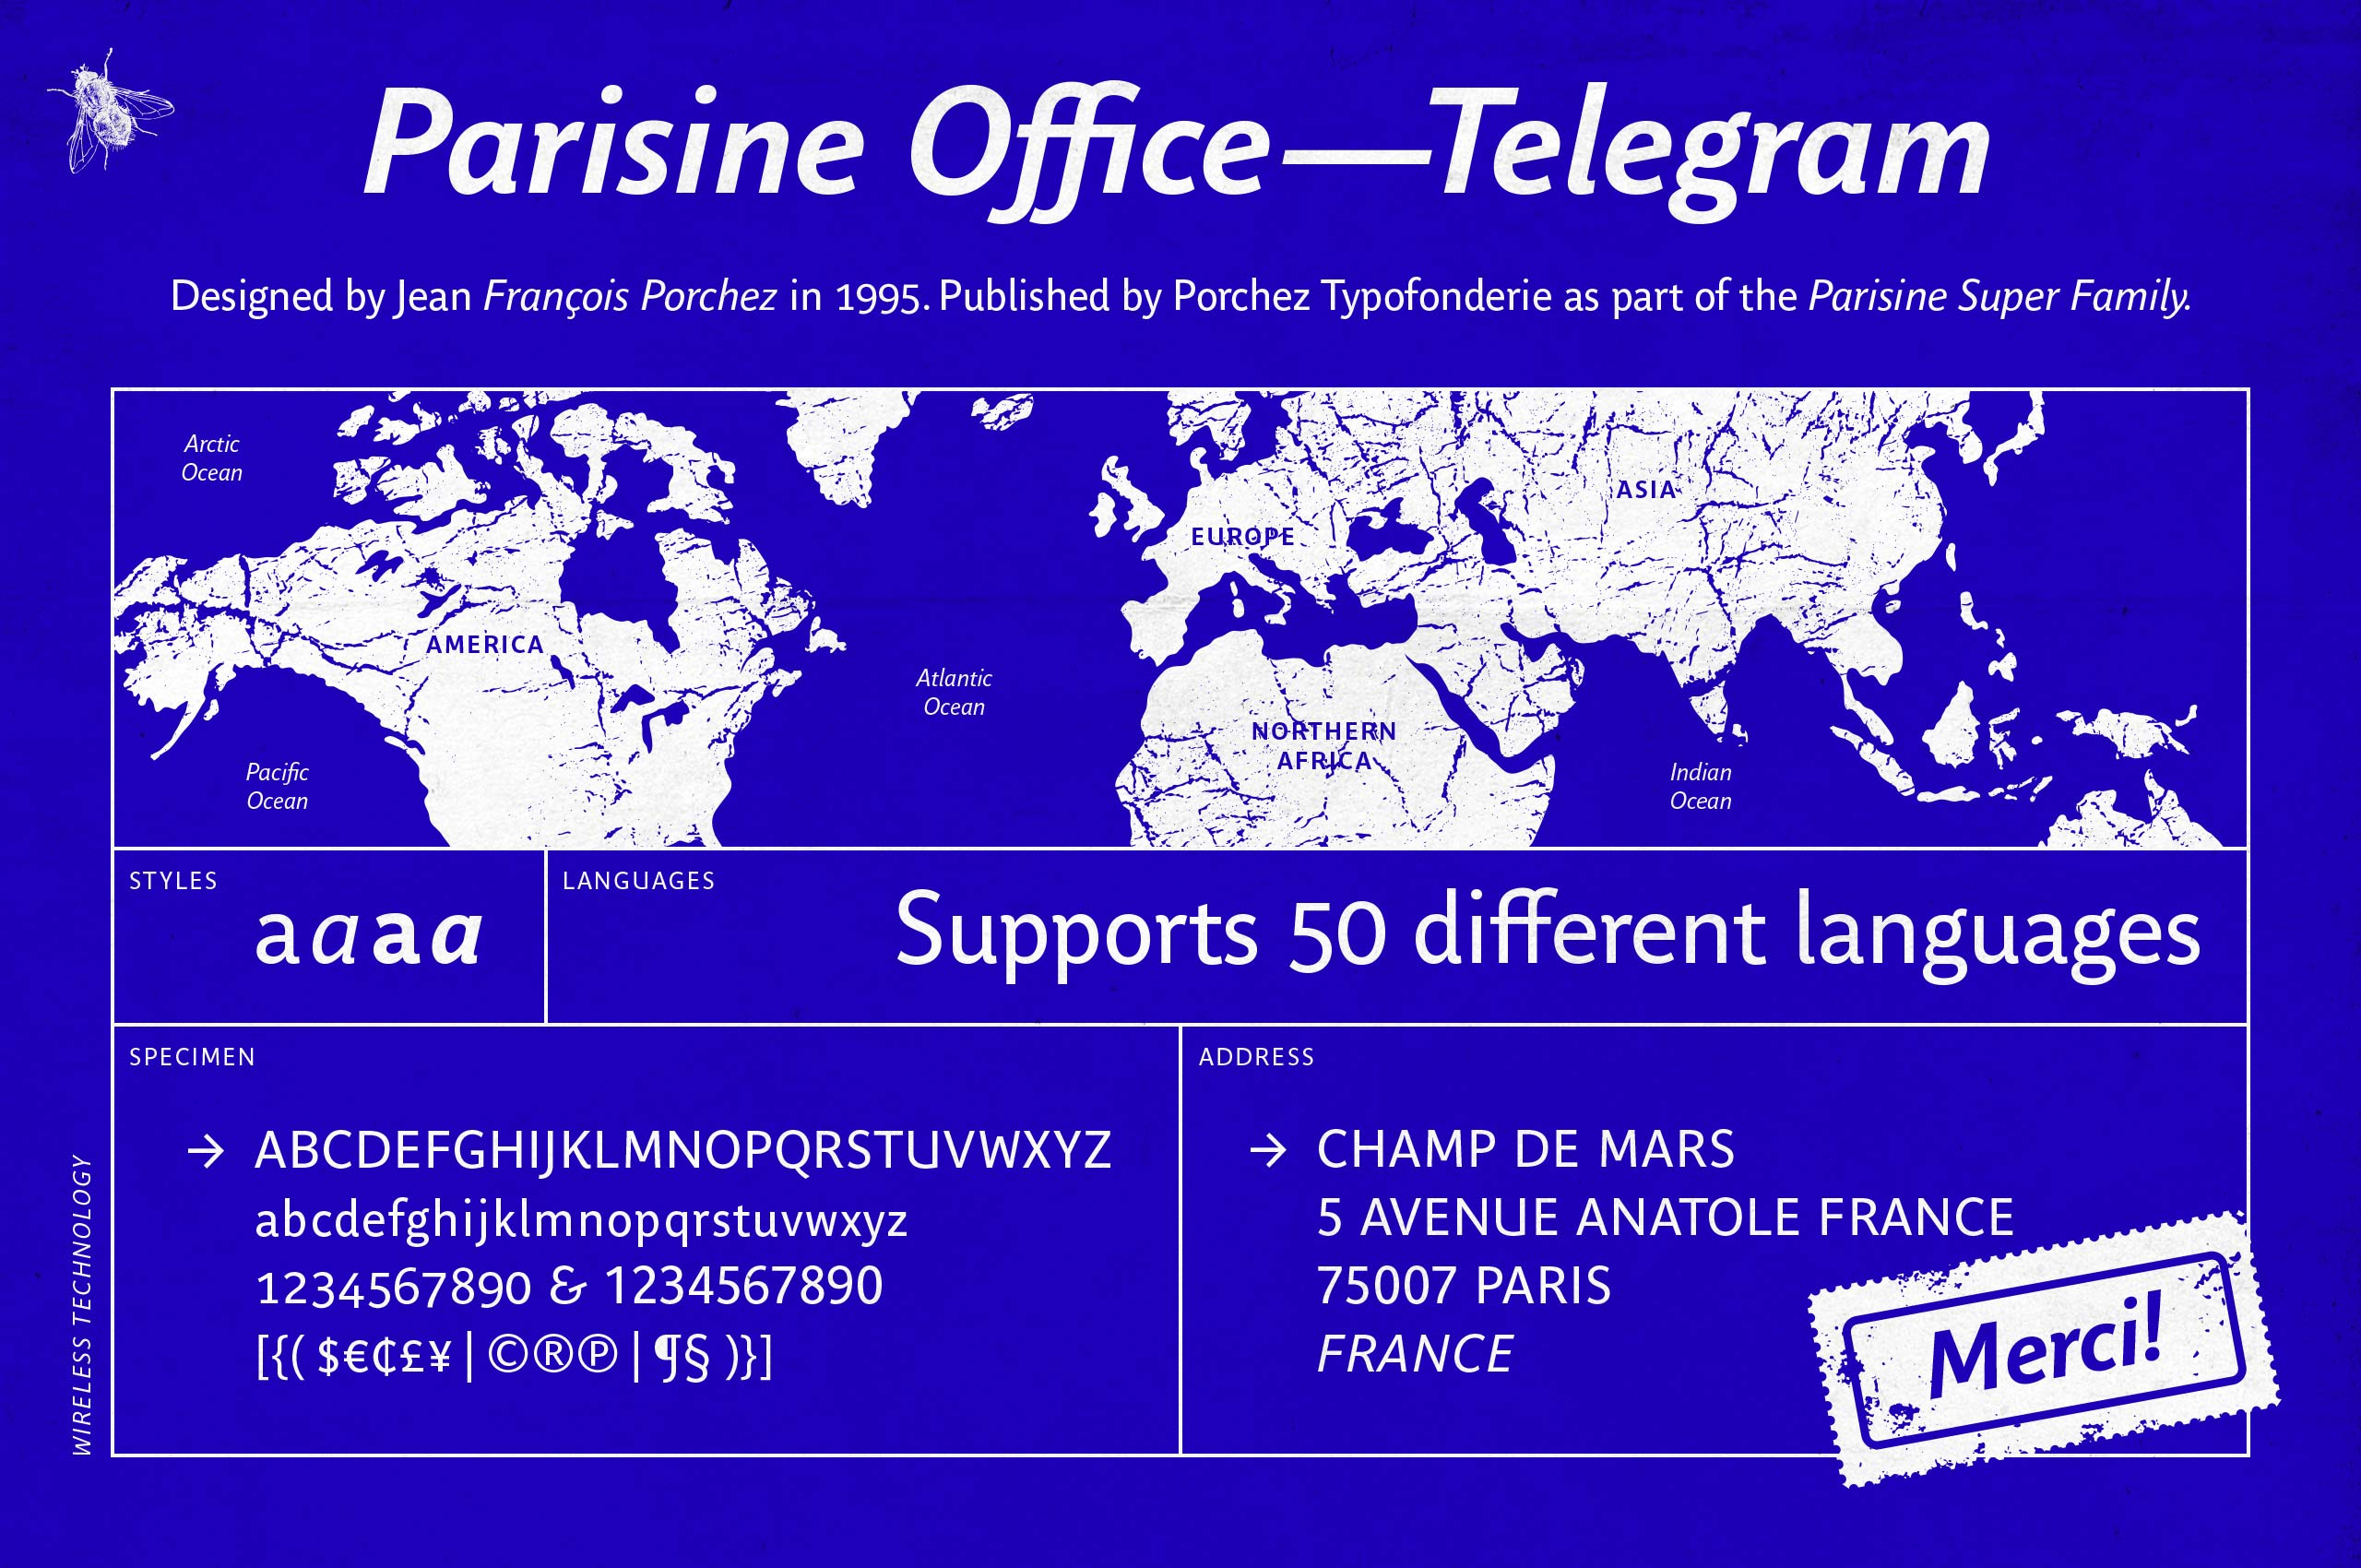 Parisine Office